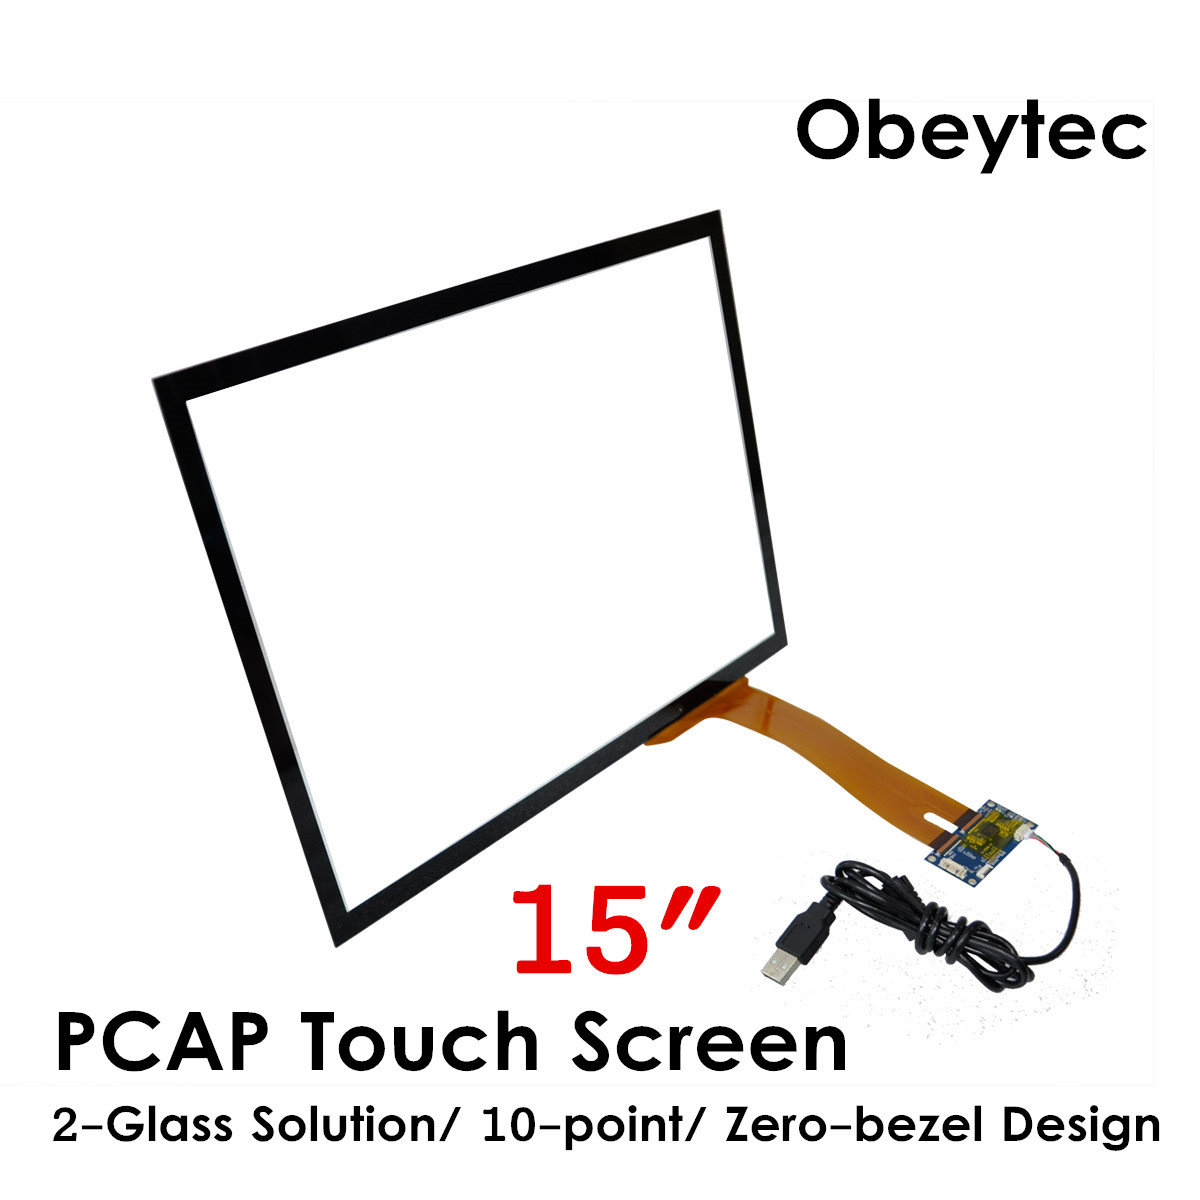 Obeytec 15inch Projection Capacitive Touch Panel, 16:9, P CAP, For LCD Display Monitor, High Sensitive